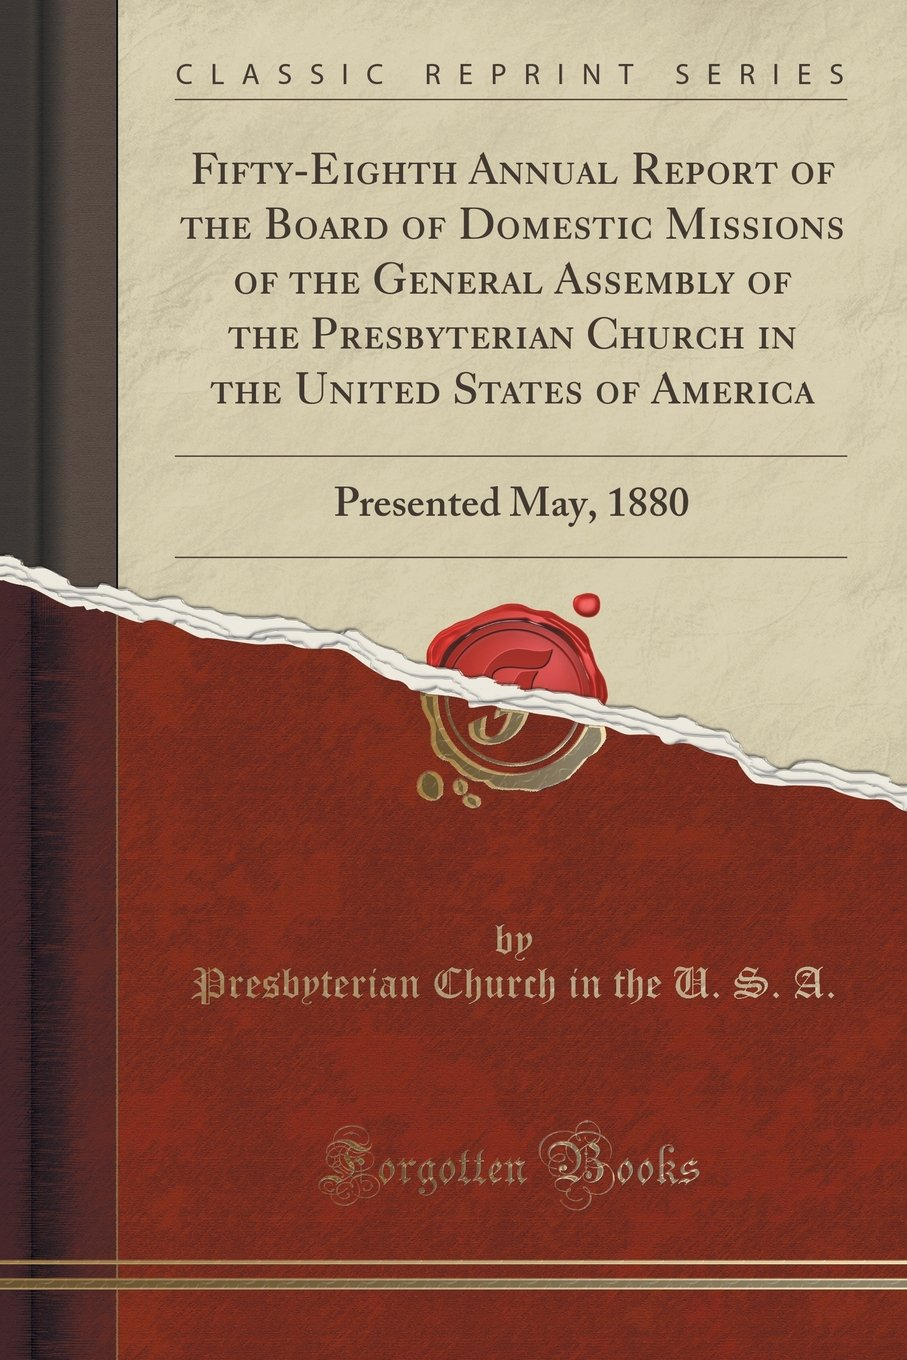 Download Fifty-Eighth Annual Report of the Board of Domestic Missions of the General Assembly of the Presbyterian Church in the United States of America: Presented May, 1880 (Classic Reprint) PDF